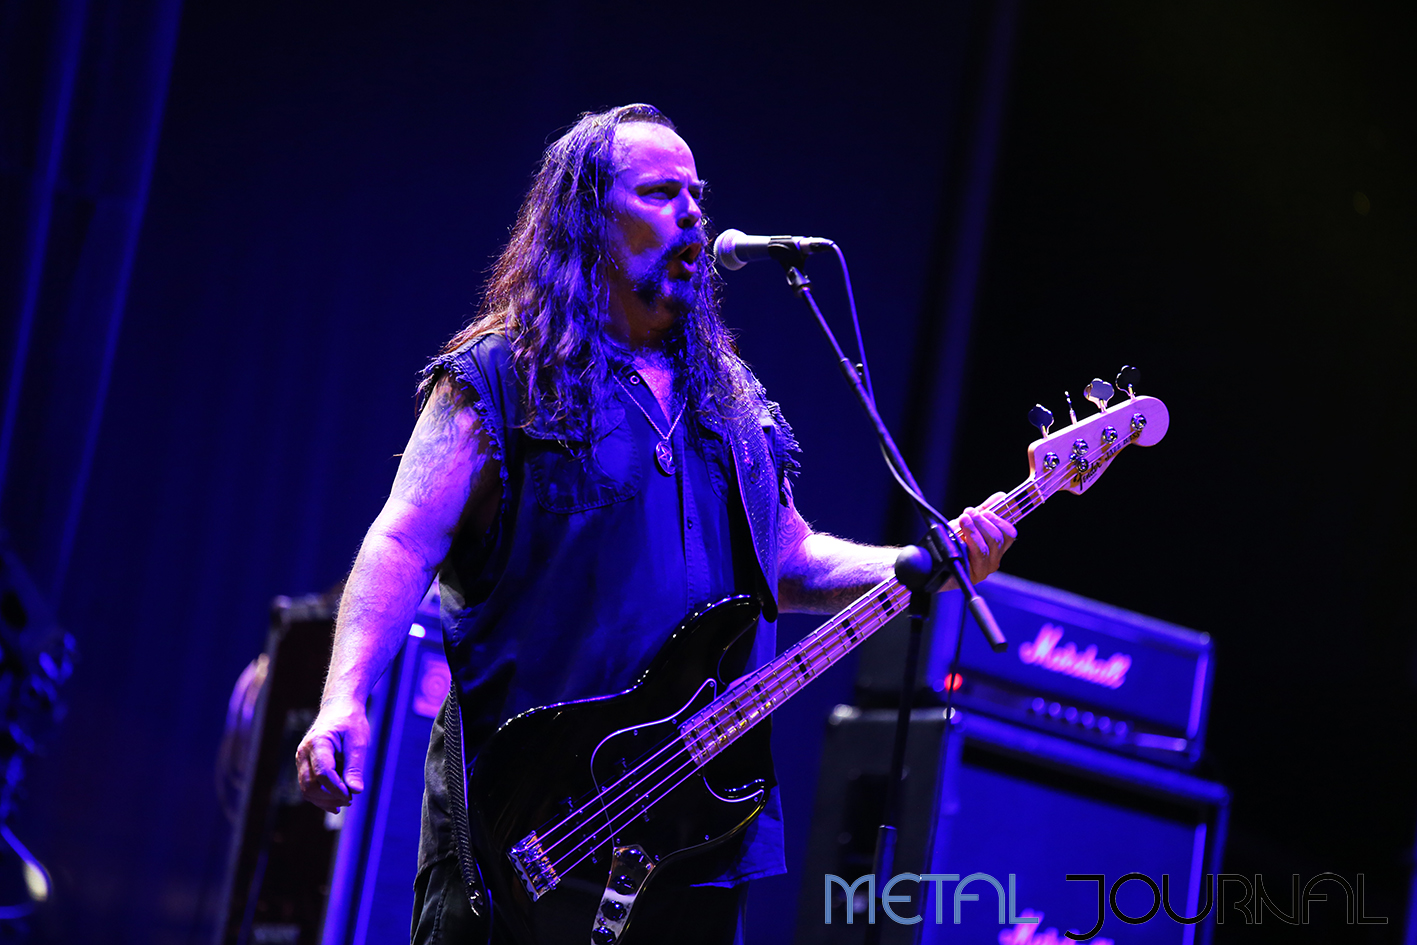 deicide - leyendas del rock 2019 metal journal pic 4